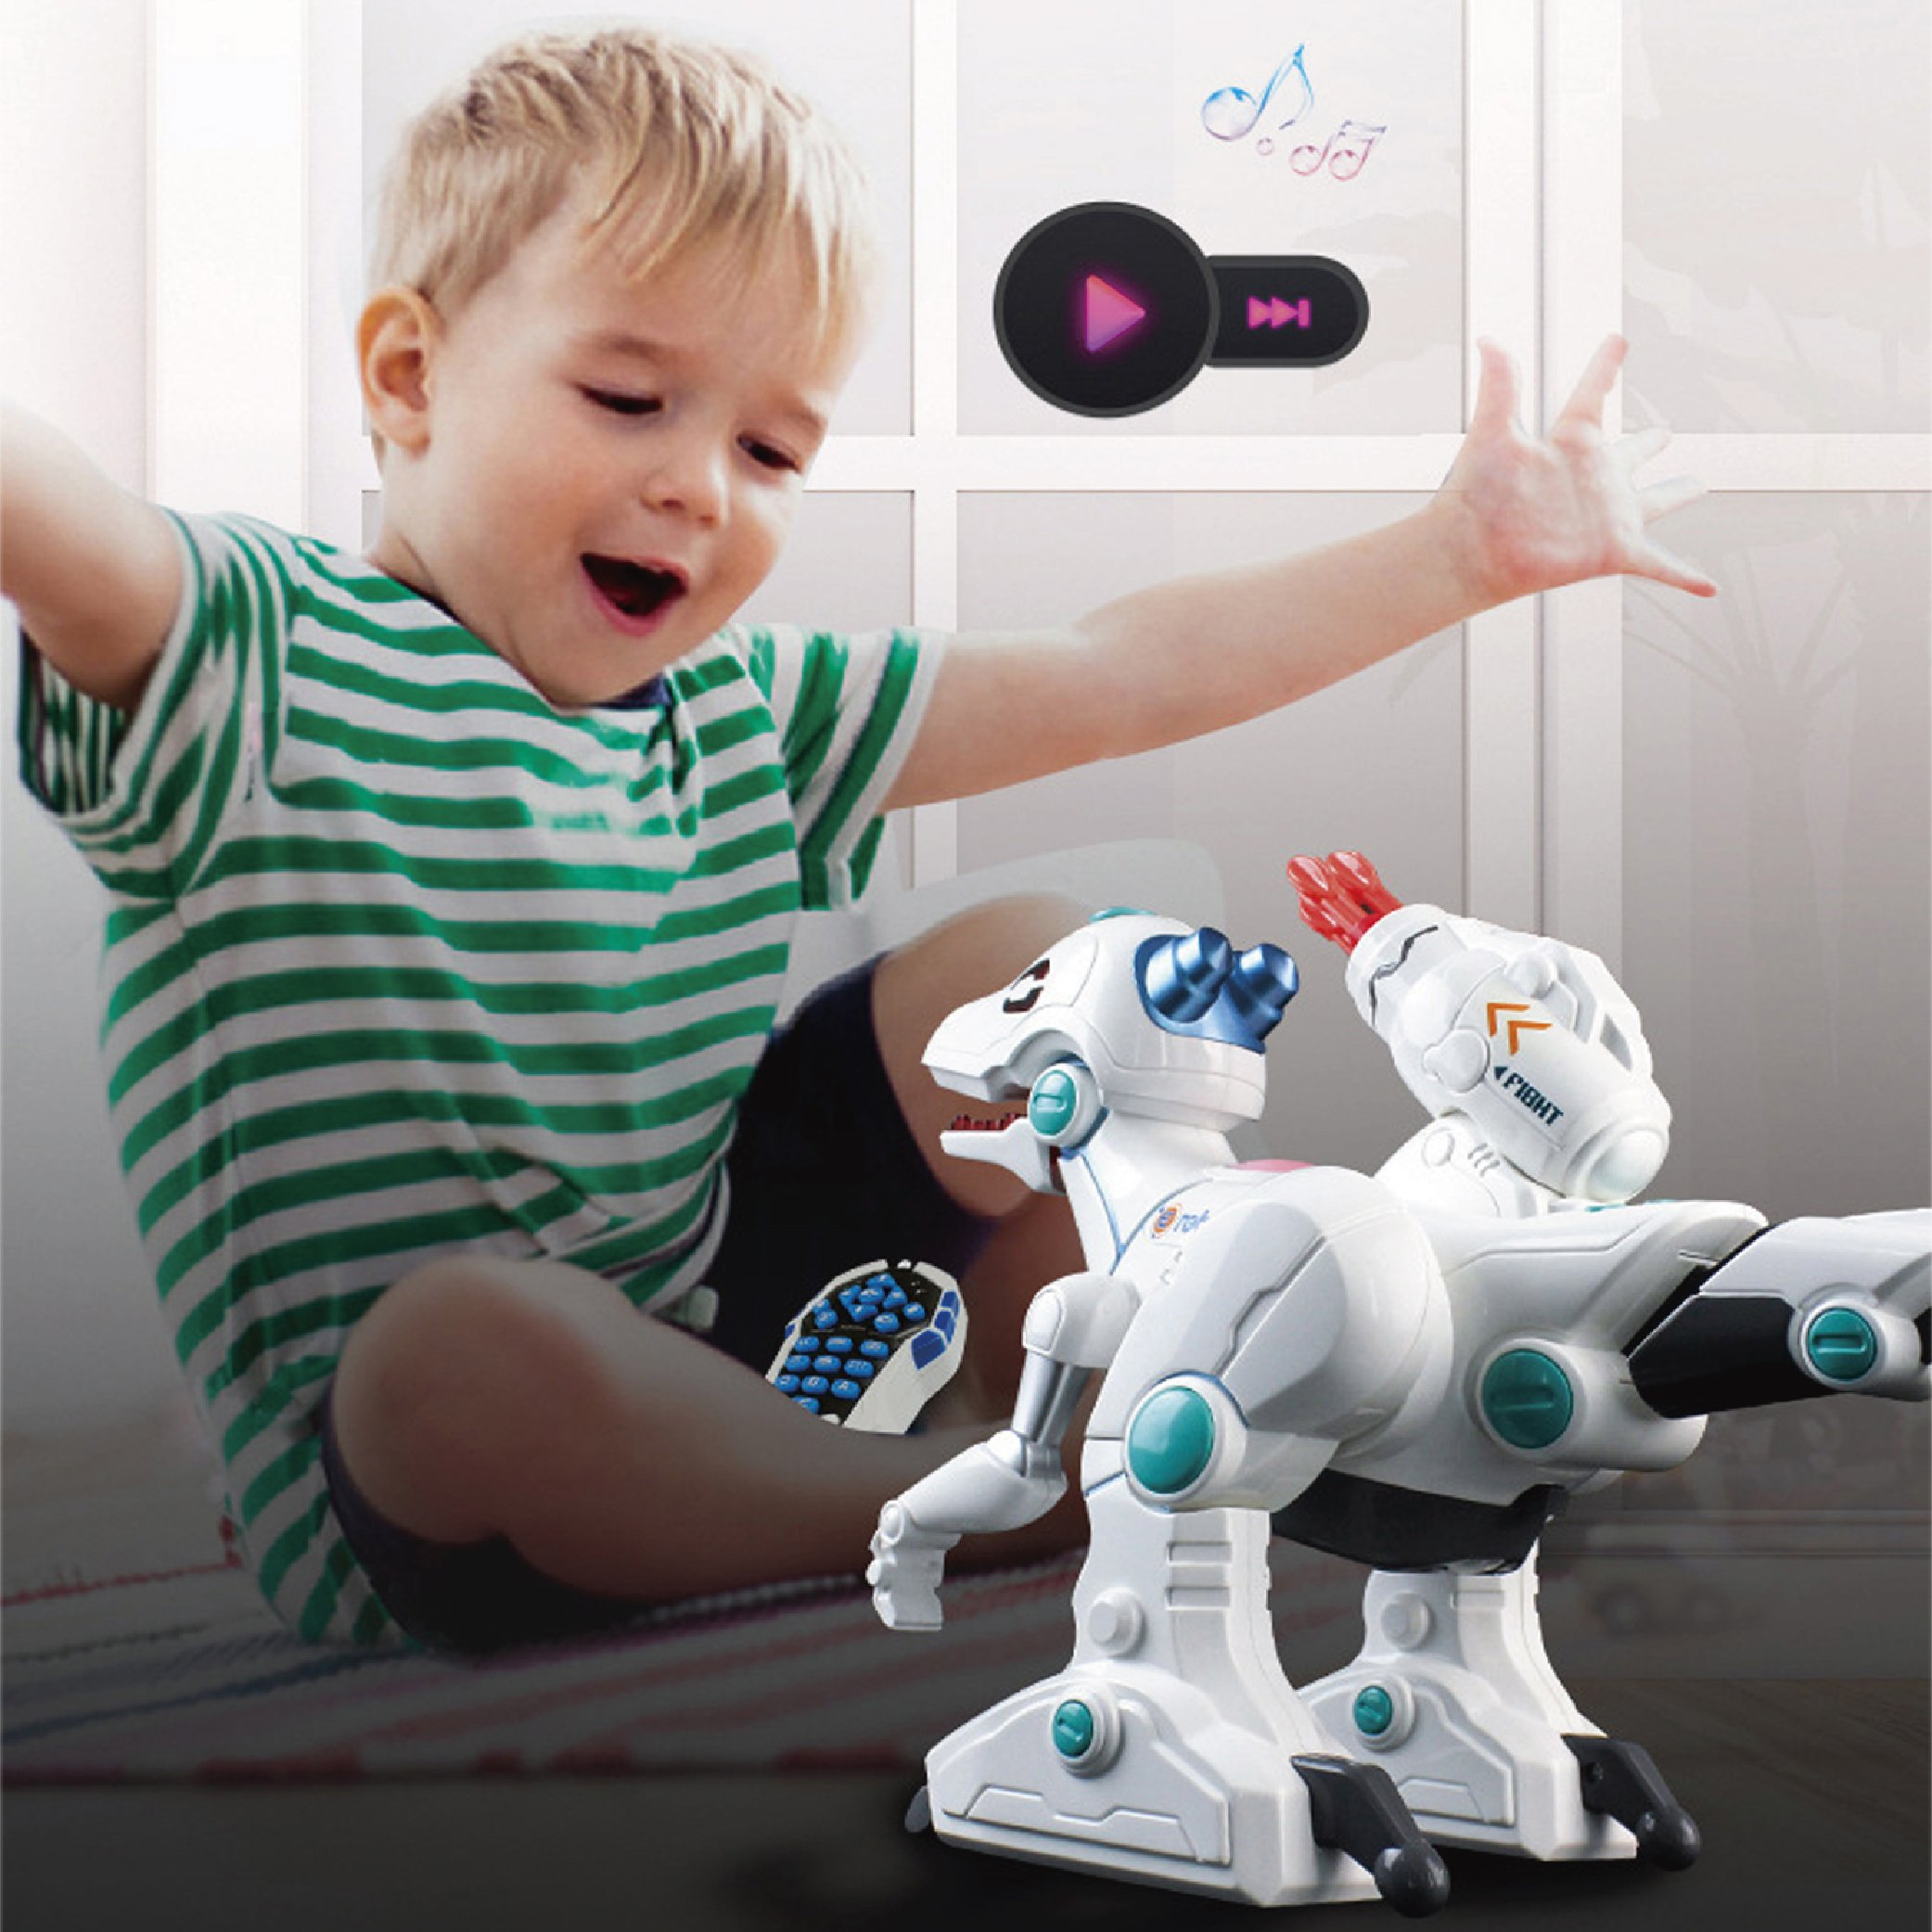 Haite Remote Control Robot Dinosaur, Dinosaur Toys for Kids, Dino Action, Sprays, Fight, Shooting, Live Sound, Rechargeable Intelligent Electronic Pet for Boys/Girls by Haite (Image #7)